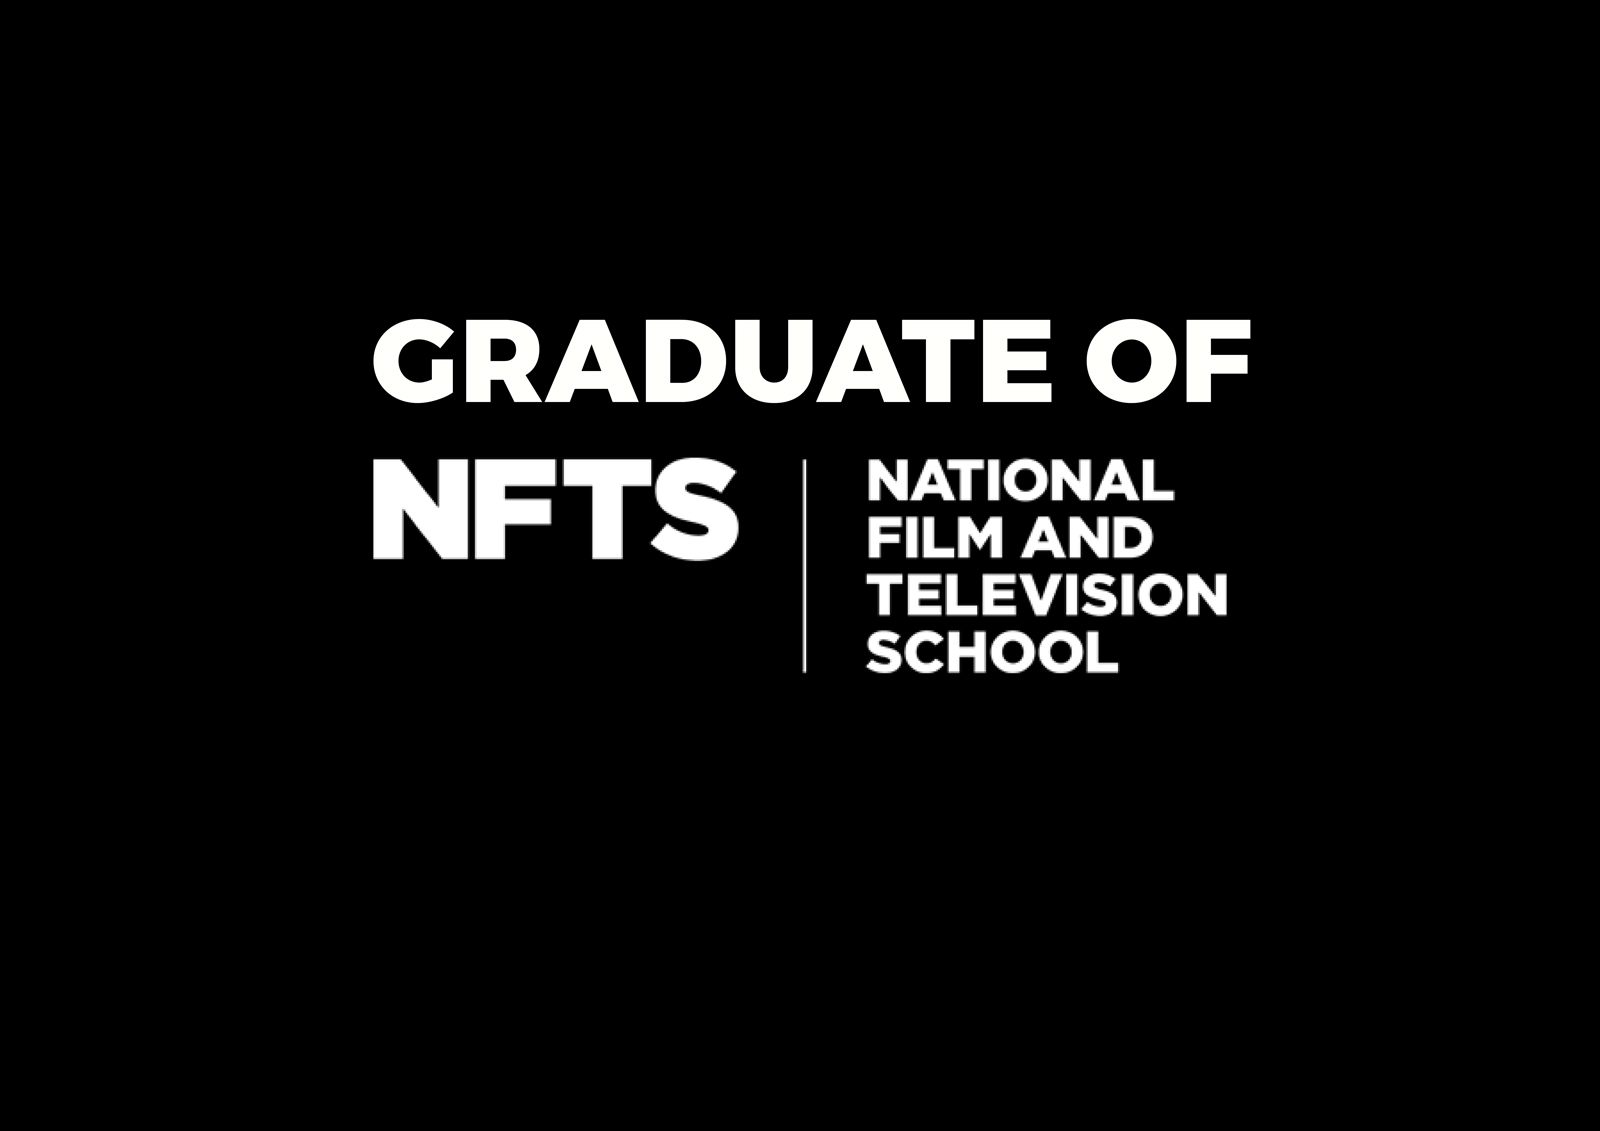 GRADUATE OF THE NATIONAL FILM & TV SCHOOL